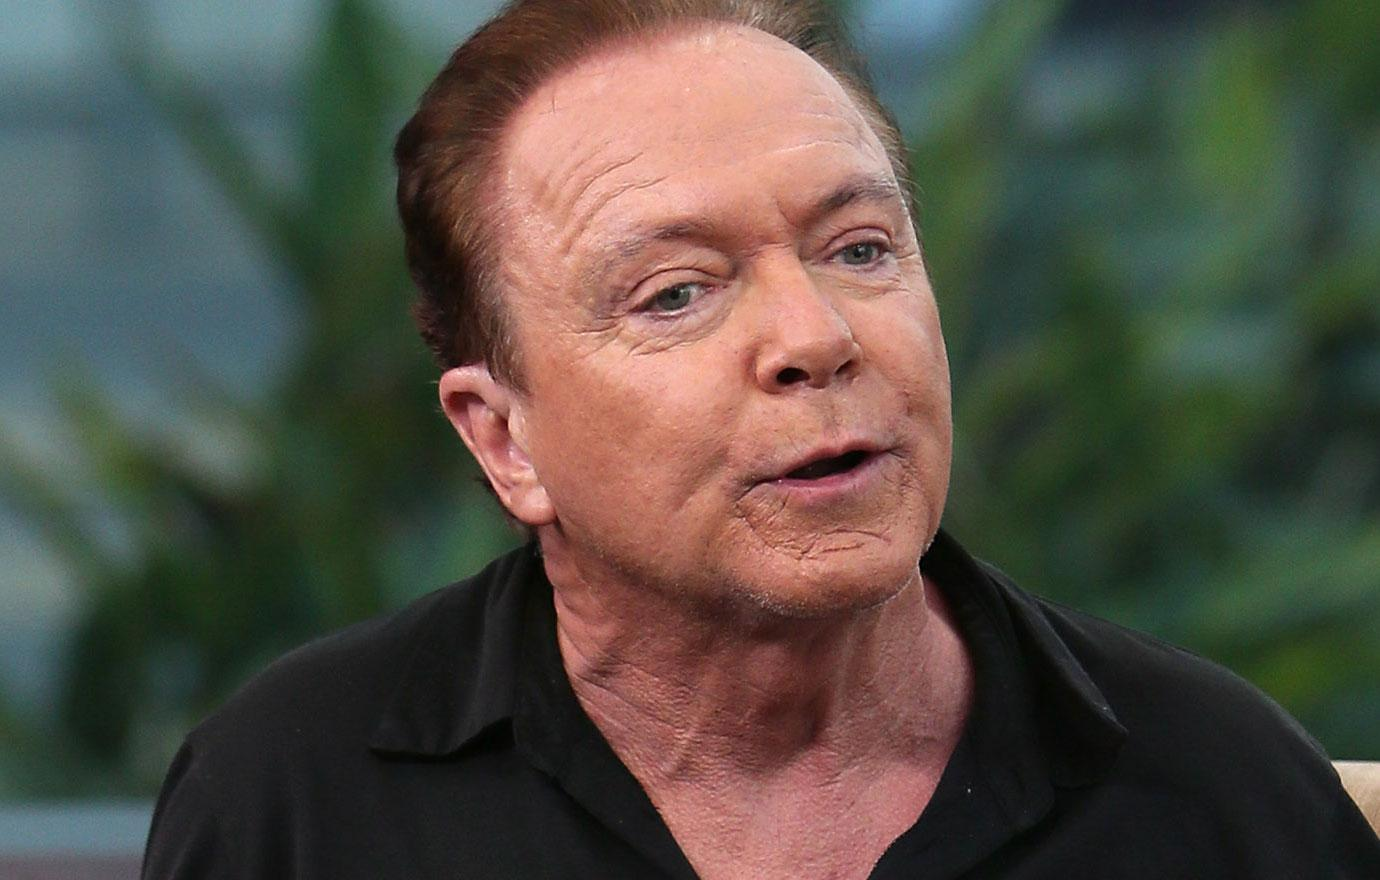 David Cassidy Placed In Self-Induced Coma